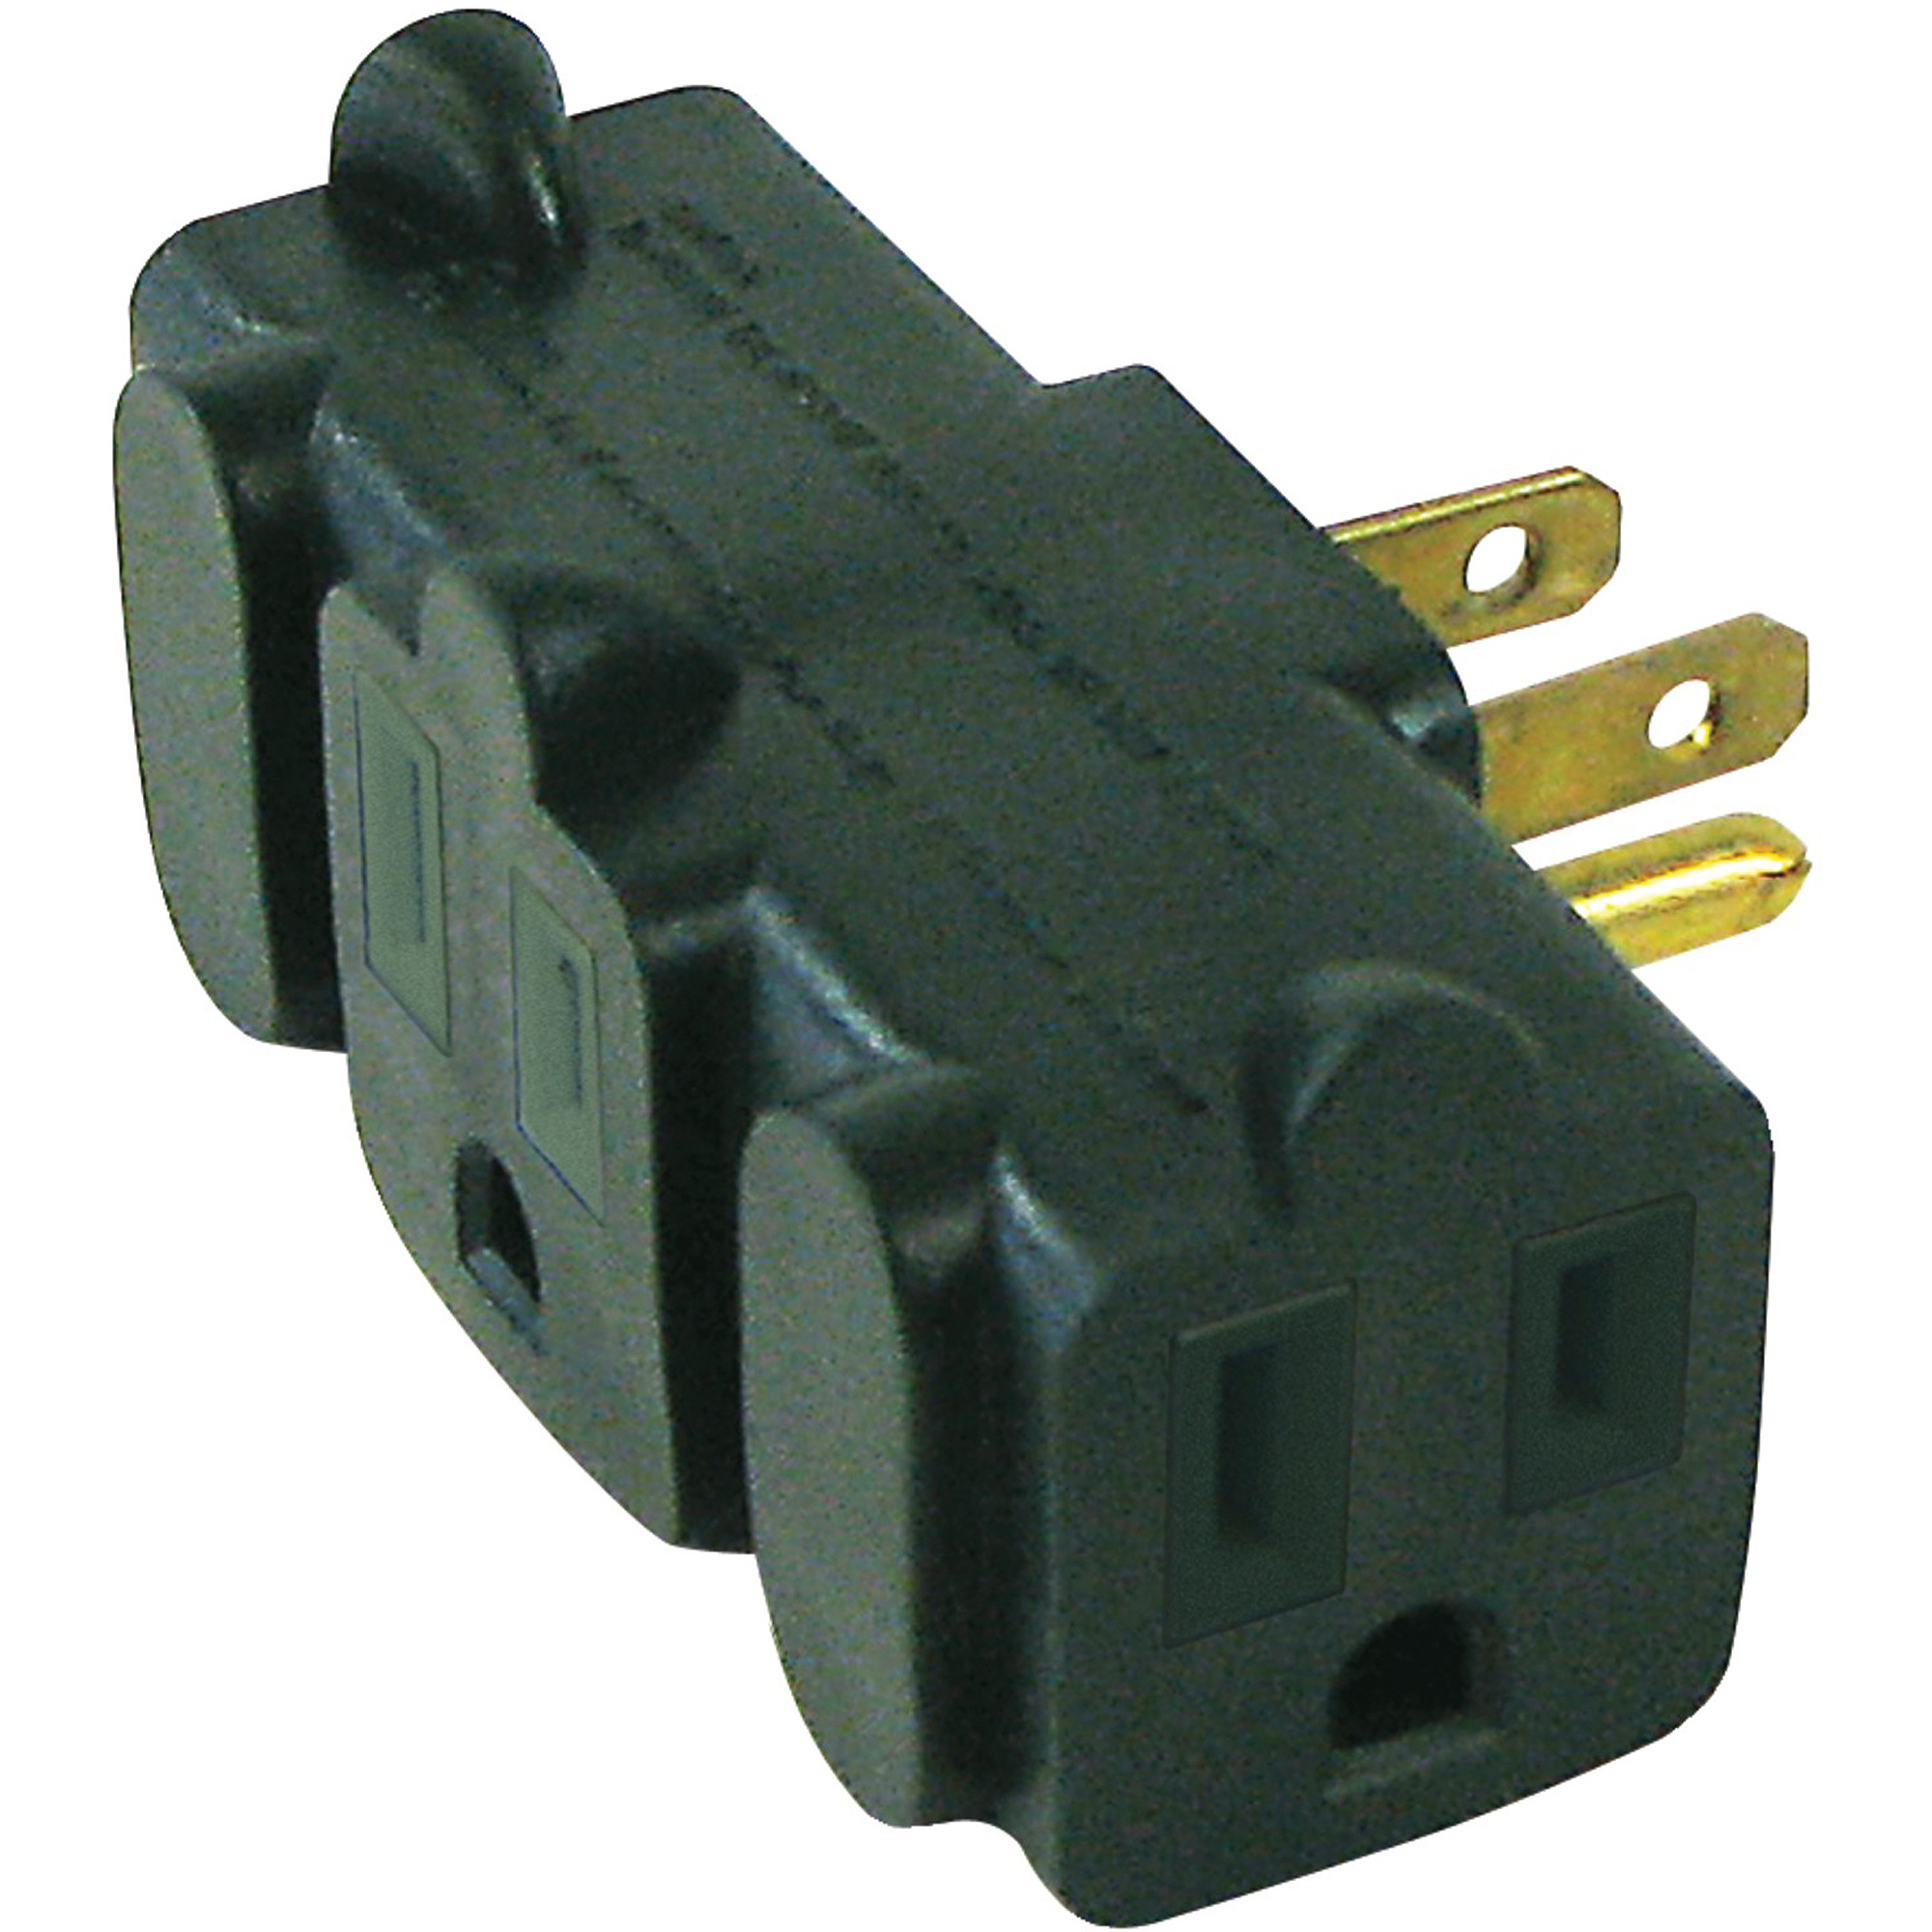 Axis 45092 3-Outlet Heavy-Duty Grounding Adapter, Green